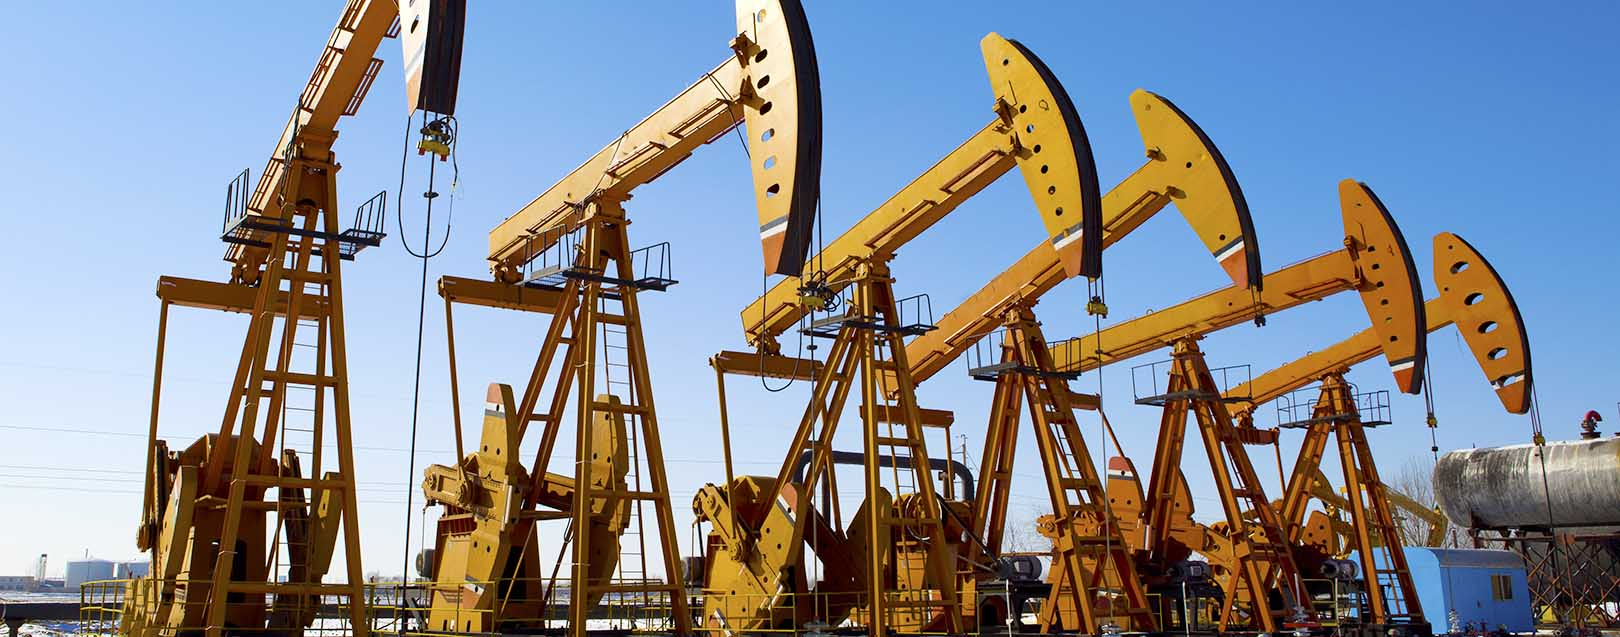 Crude exports will harm national interests: Centre